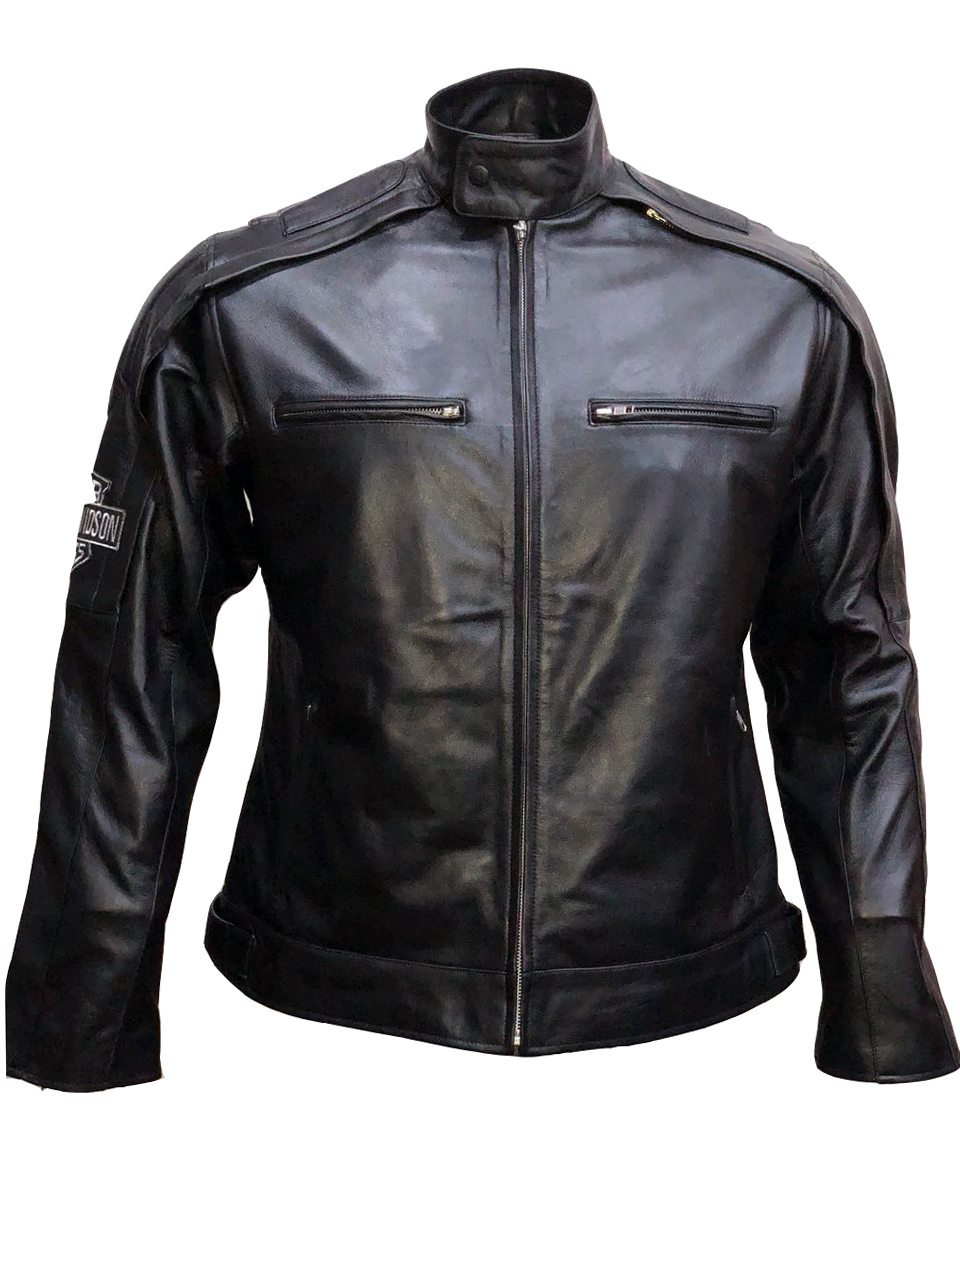 Harley Davidson Reflective Willie G Skull Leather Jacket